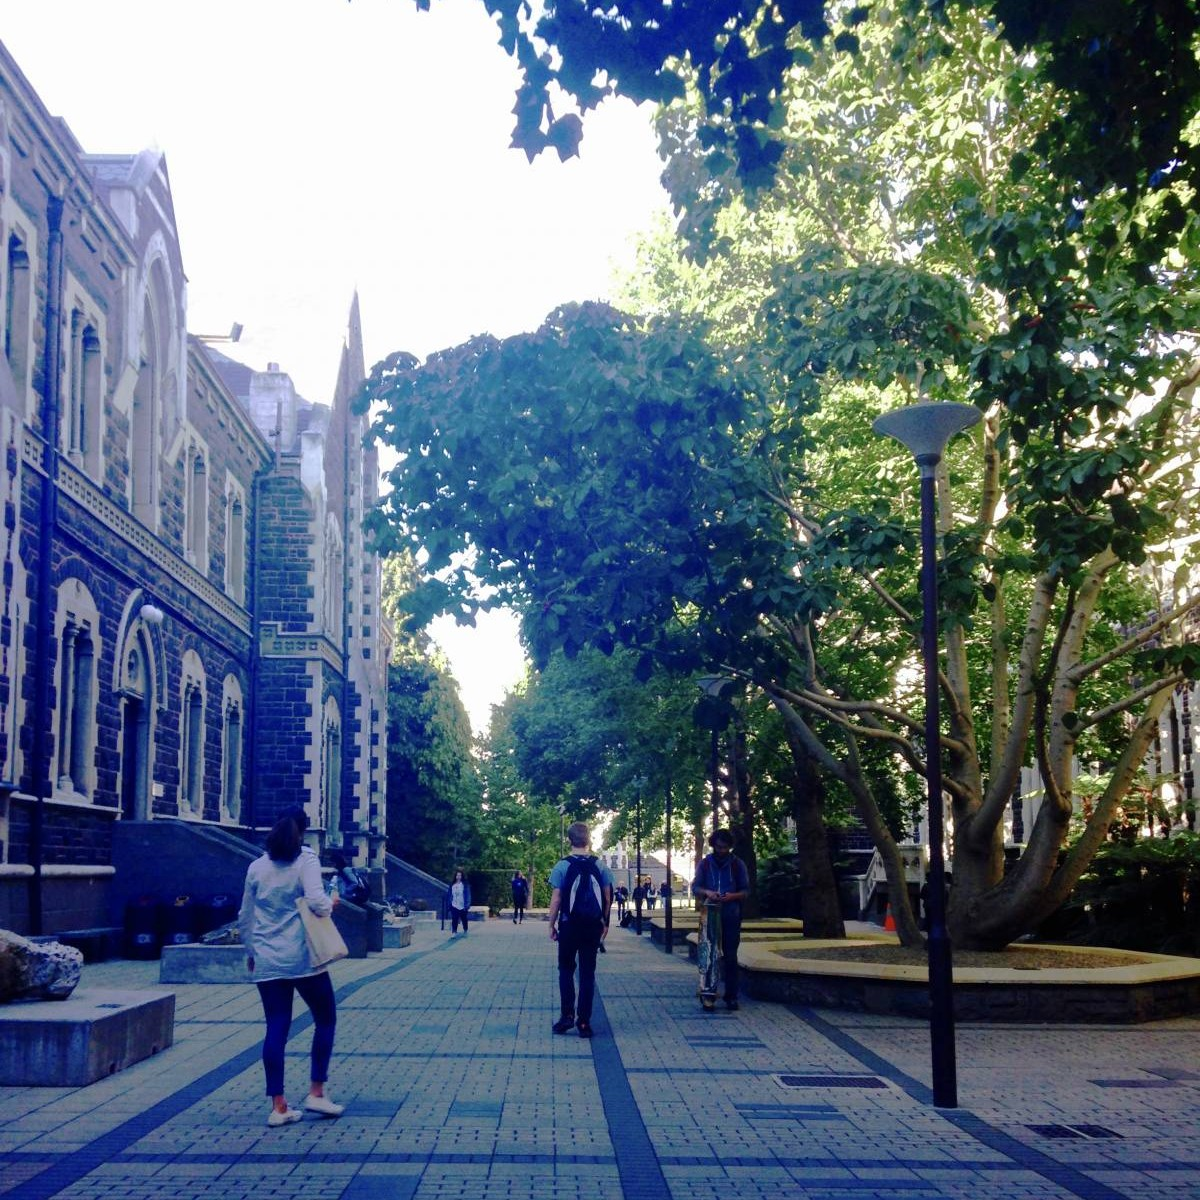 The walkway along one of Otago's oldest buildings, on my way to class this morning! Image by Vidushi Sharma.